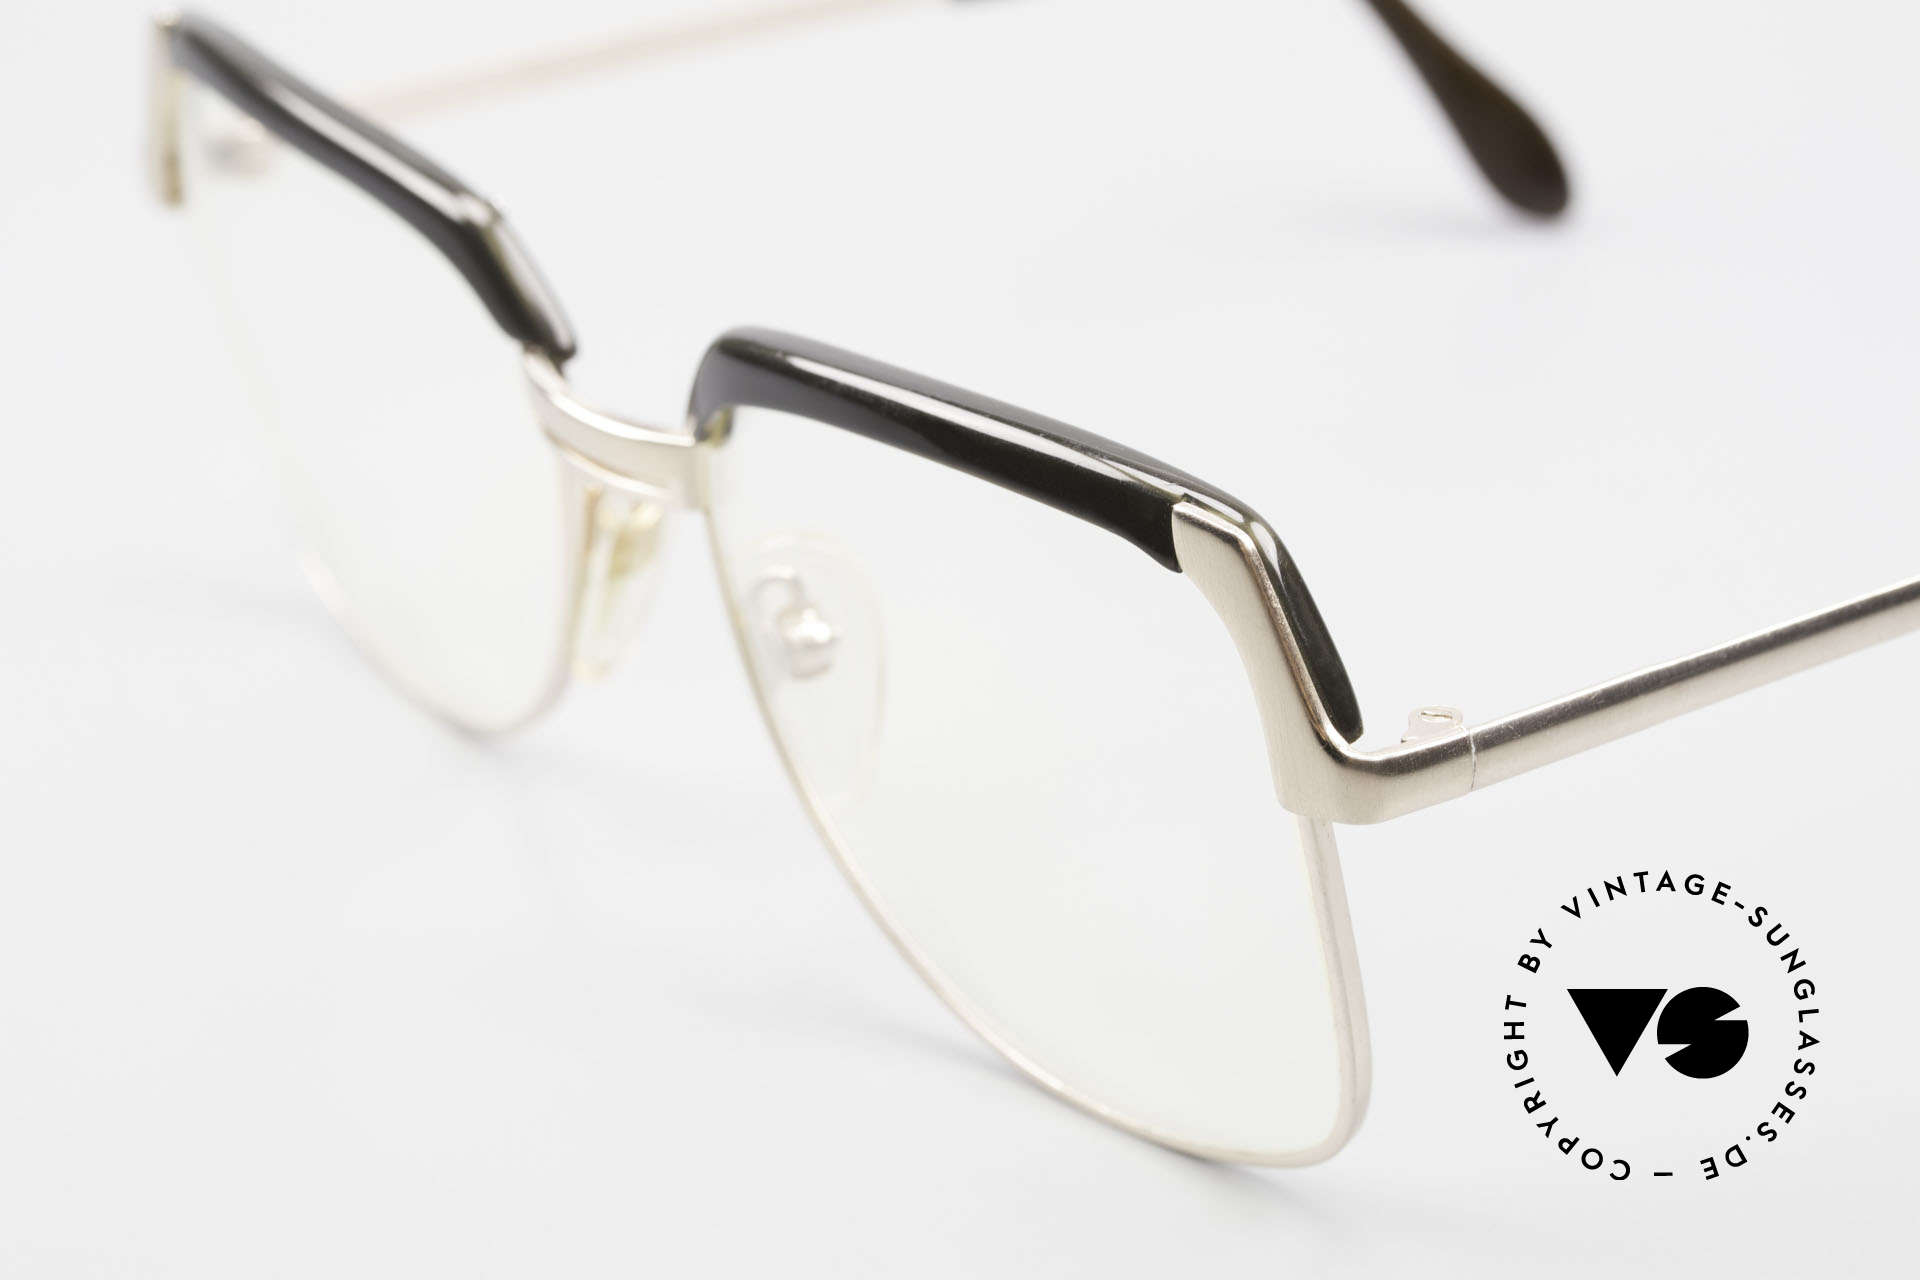 Bausch & Lomb 418 Gold Filled 80's Combi Frame, gold doublé in 1/20 10kt. proportion; high-end quality, Made for Men